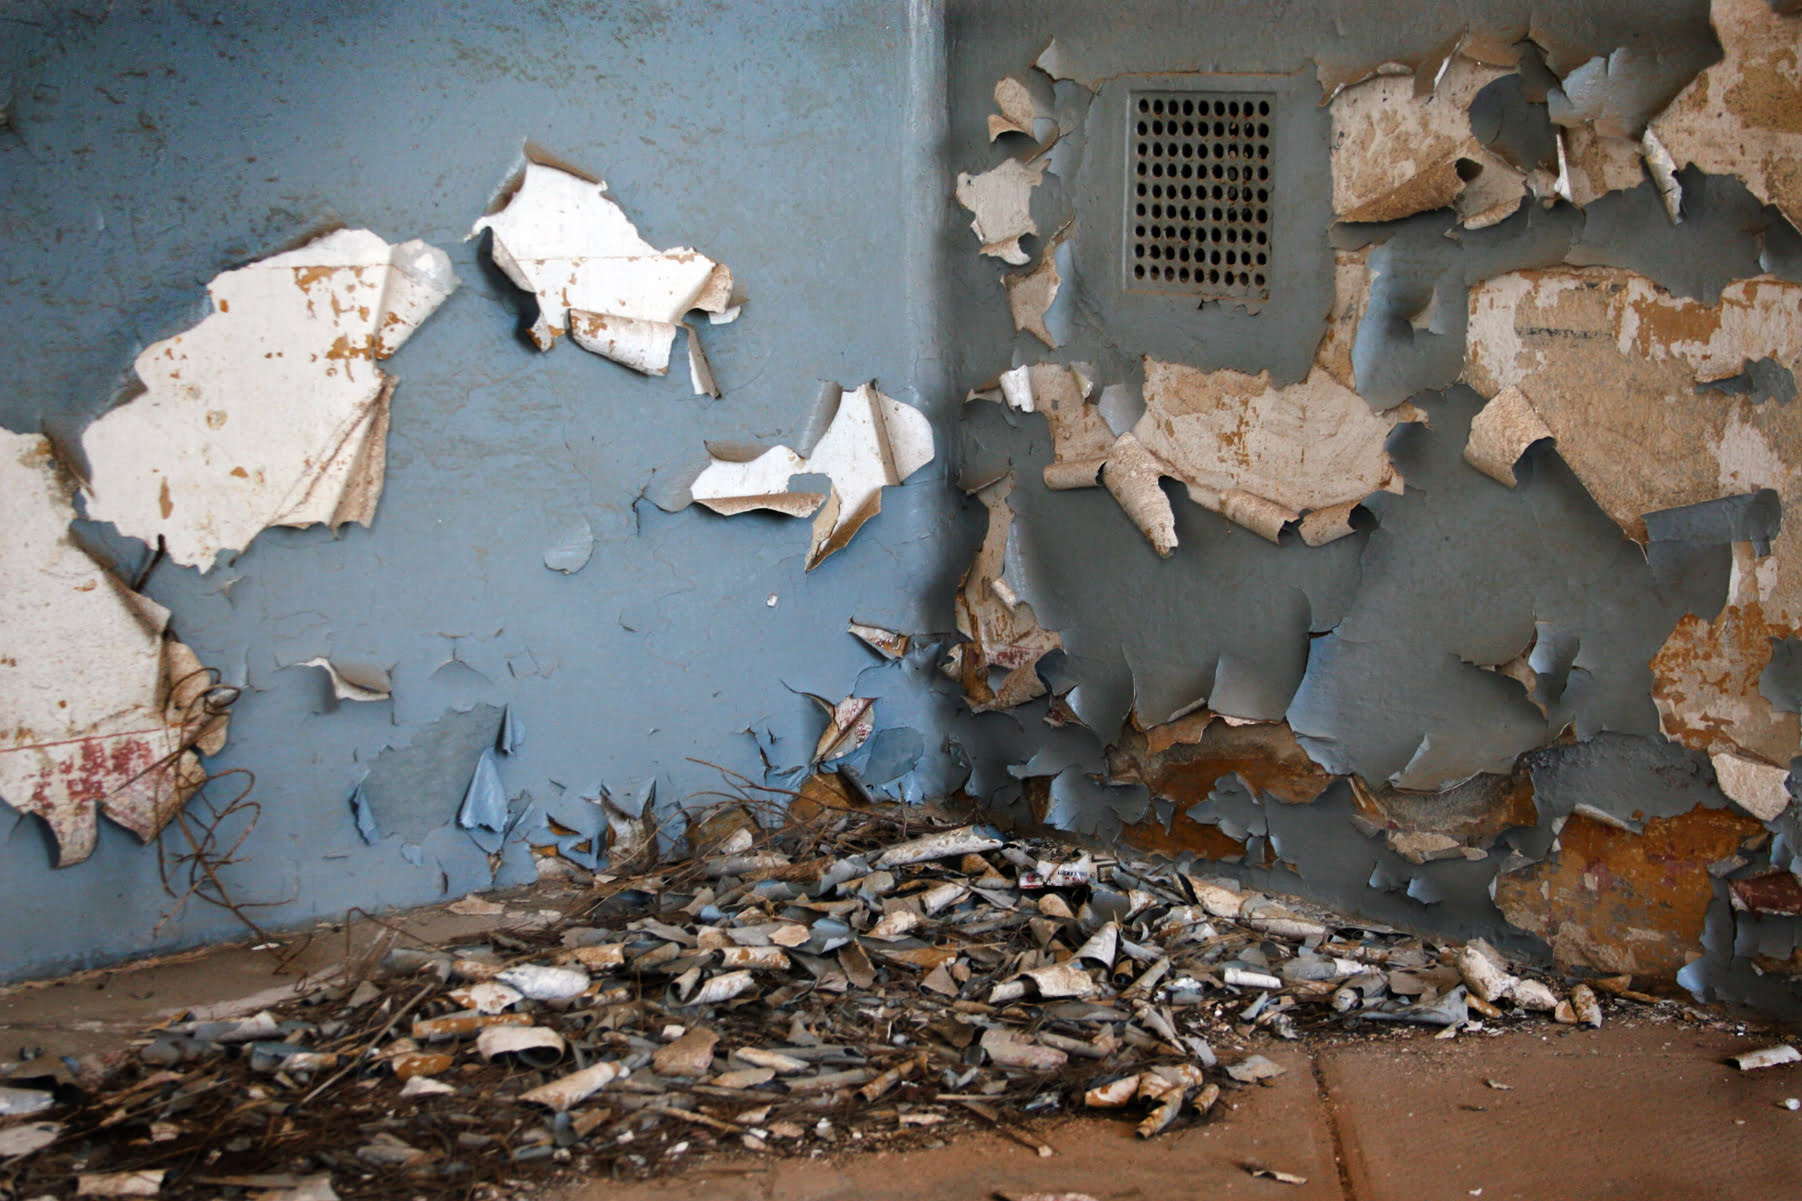 In the corner of a room where two walls meet, blue paint peels from the surface to show the white wall beneath. Curls of peeled paint gather in a pile on the brown floor below.